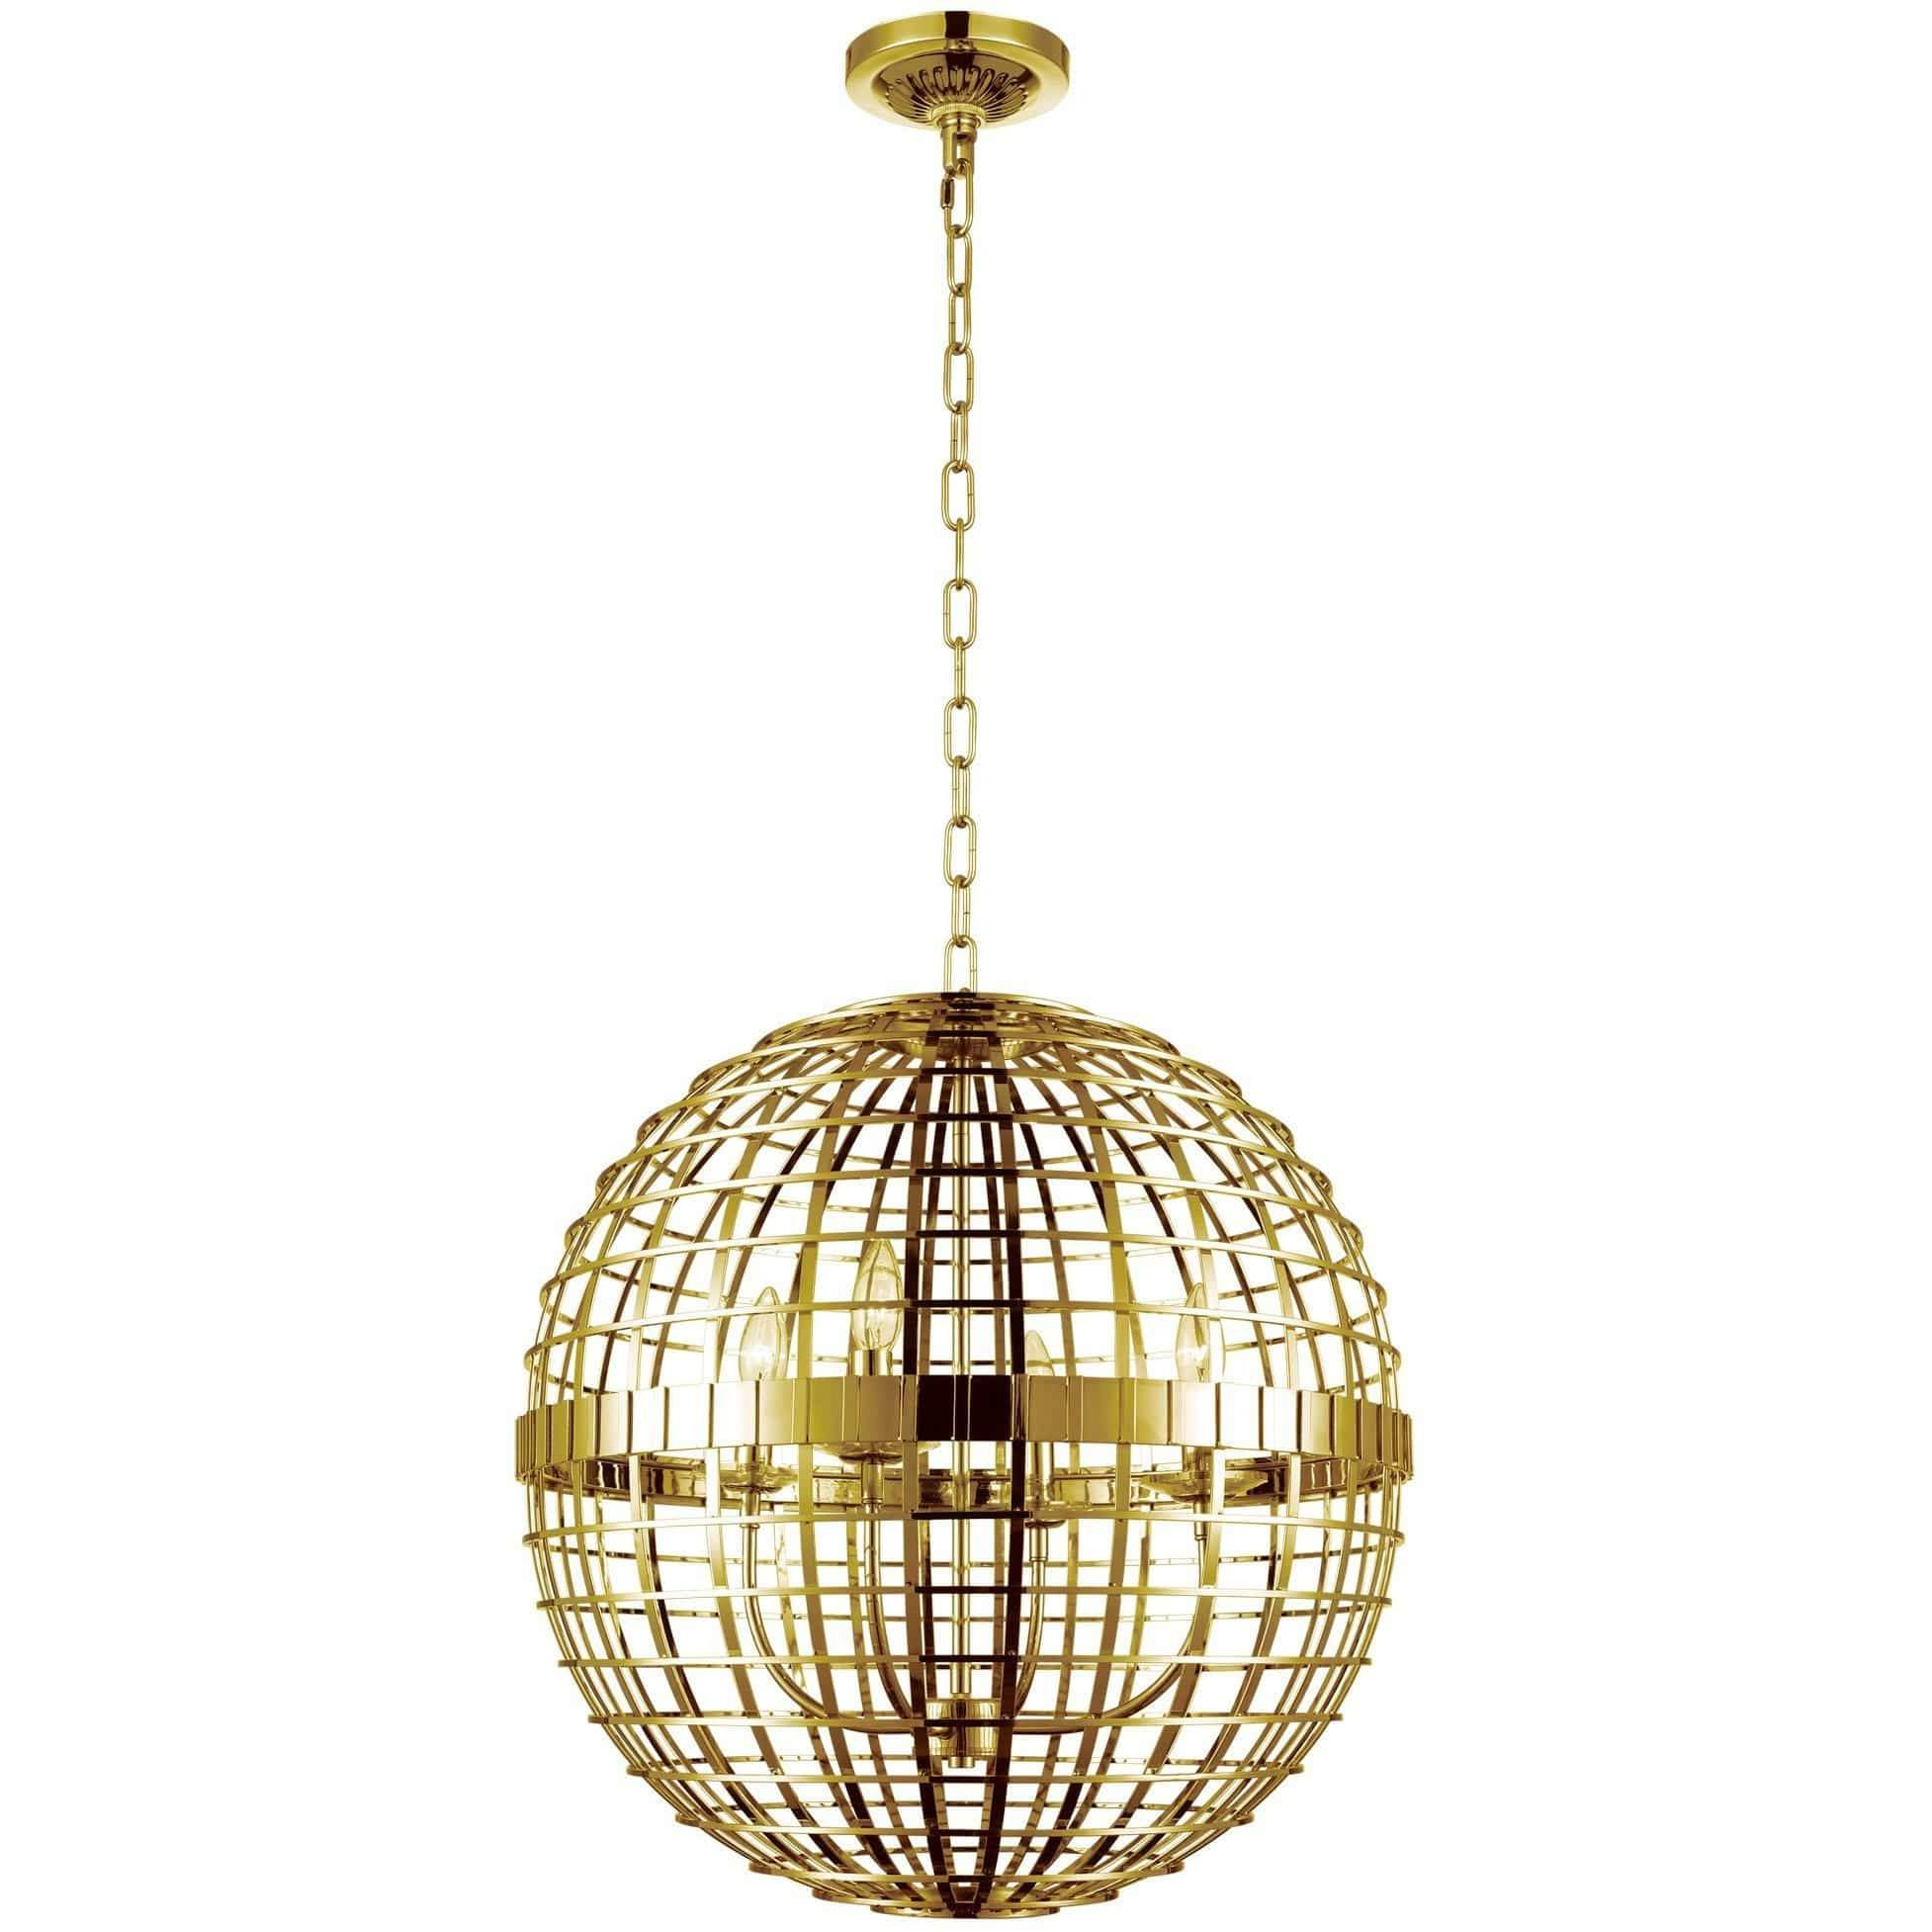 CWI Lighting Chandeliers Gold Niya 4 Light Chandelier with Gold finish by CWI Lighting 9974P16-4-608